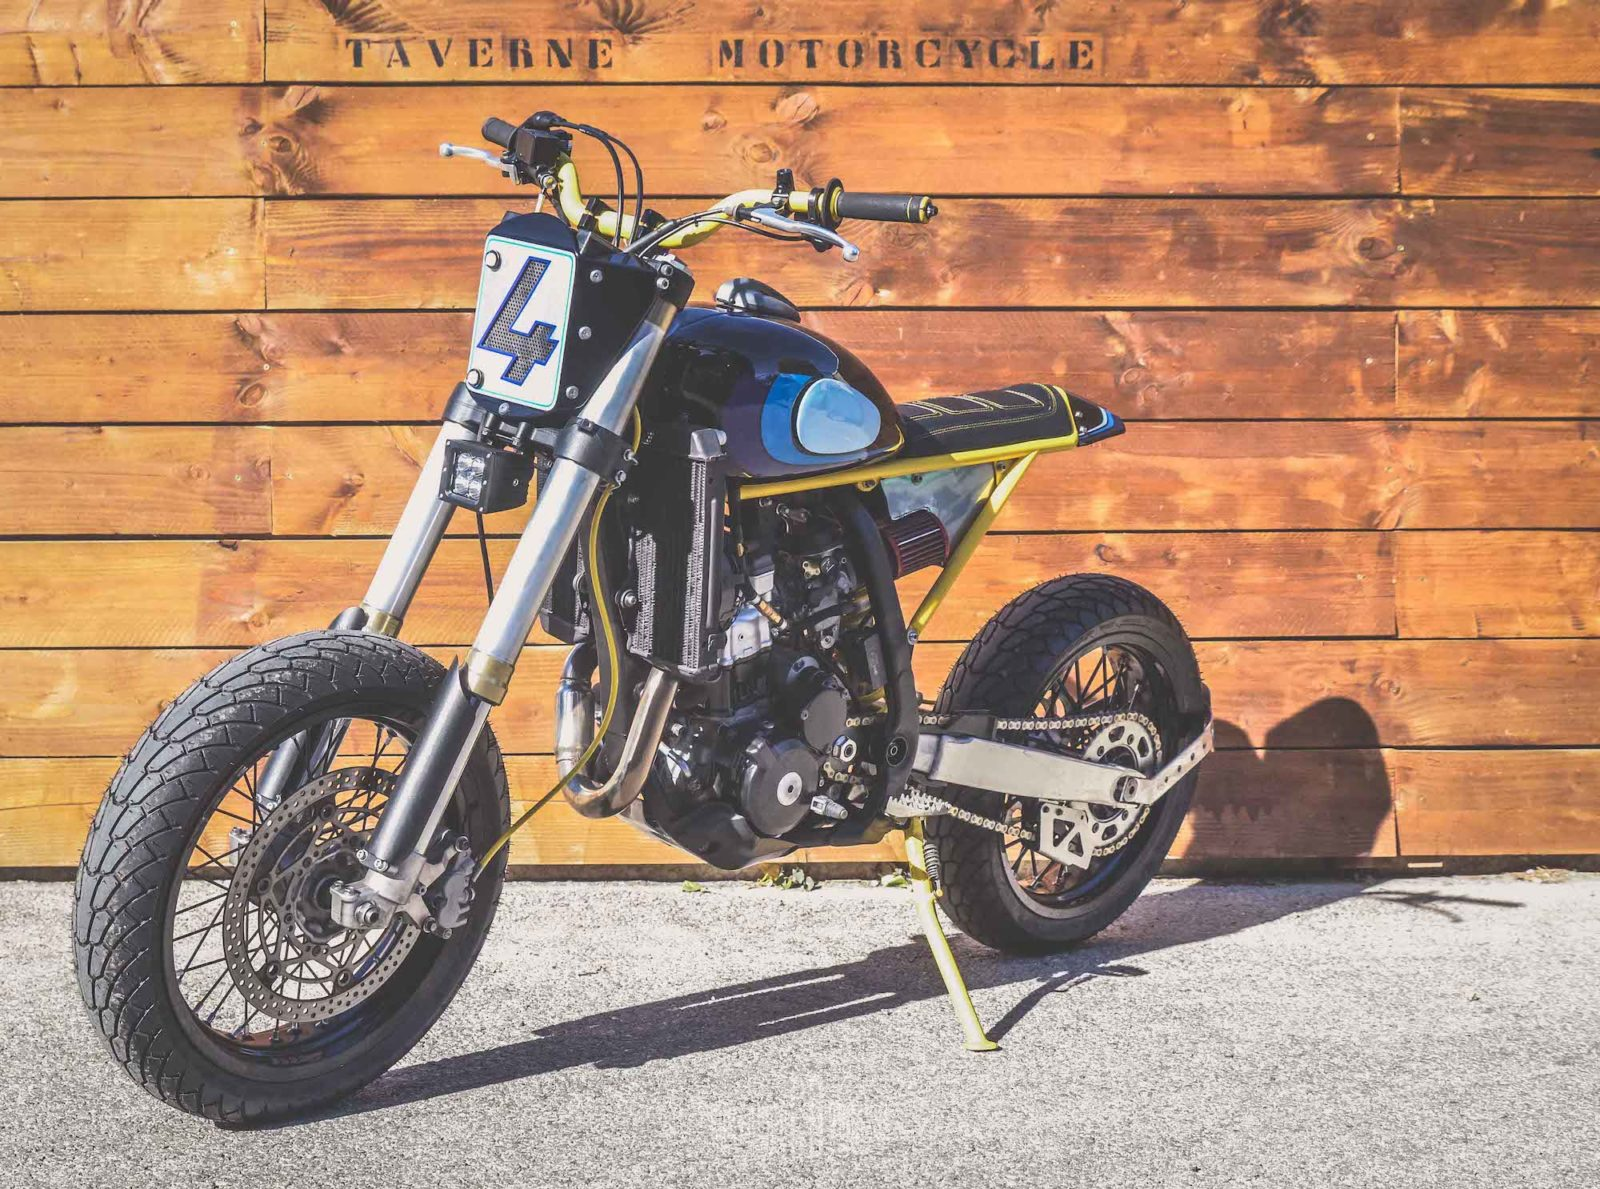 Taverne motorcycles Suzuki DRZ 400 custom cafe racer royal cambouis sud